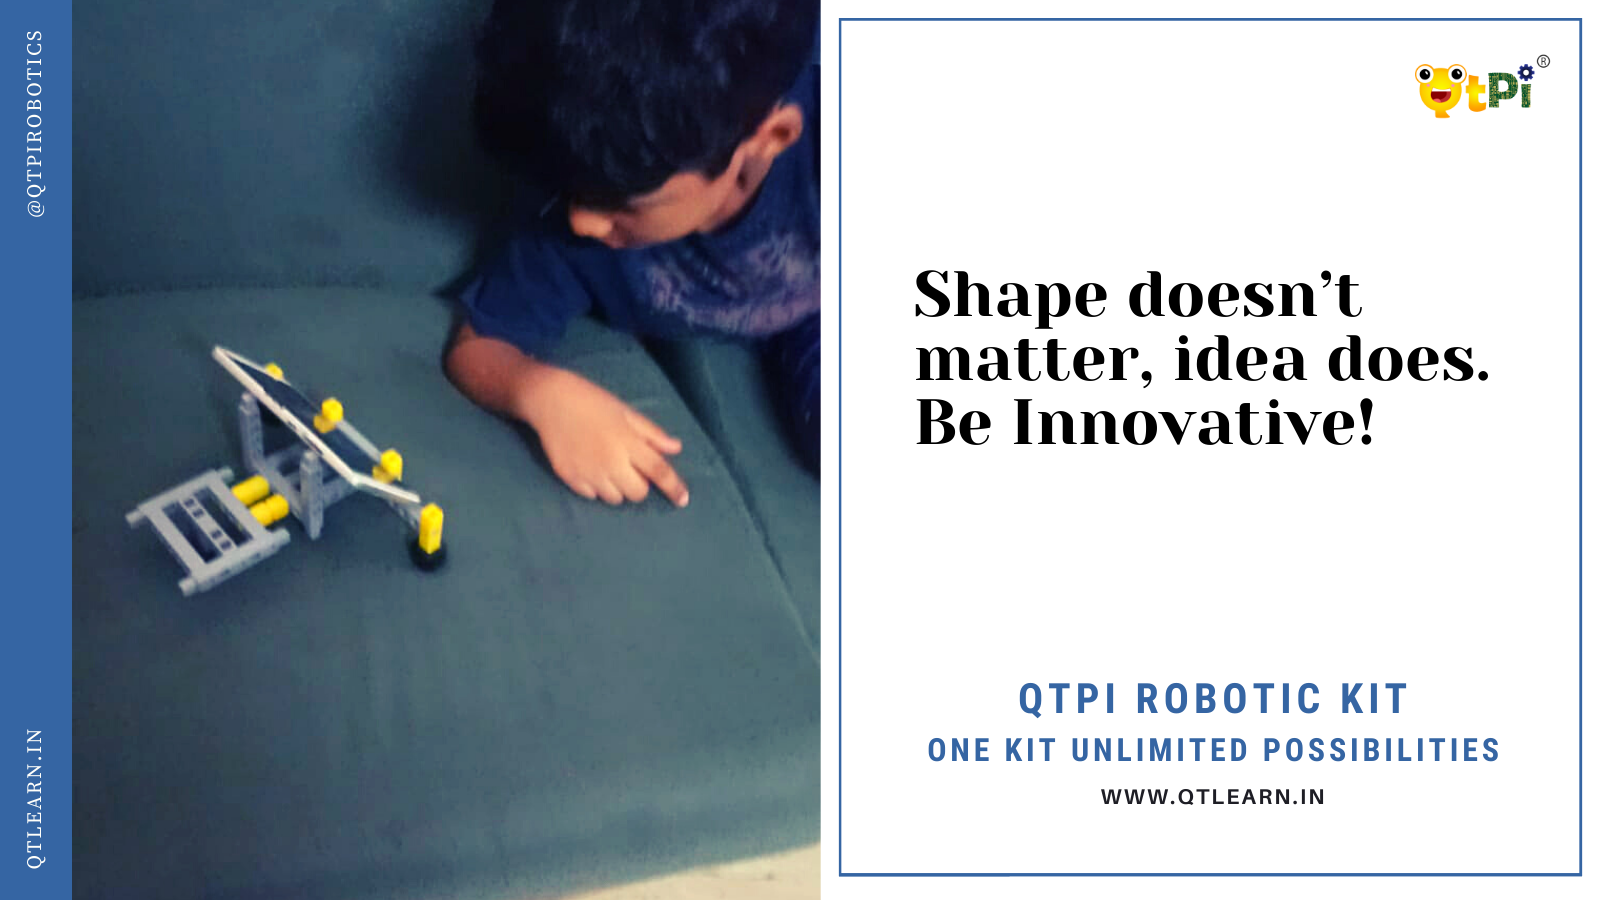 Do innovation shape ideas?